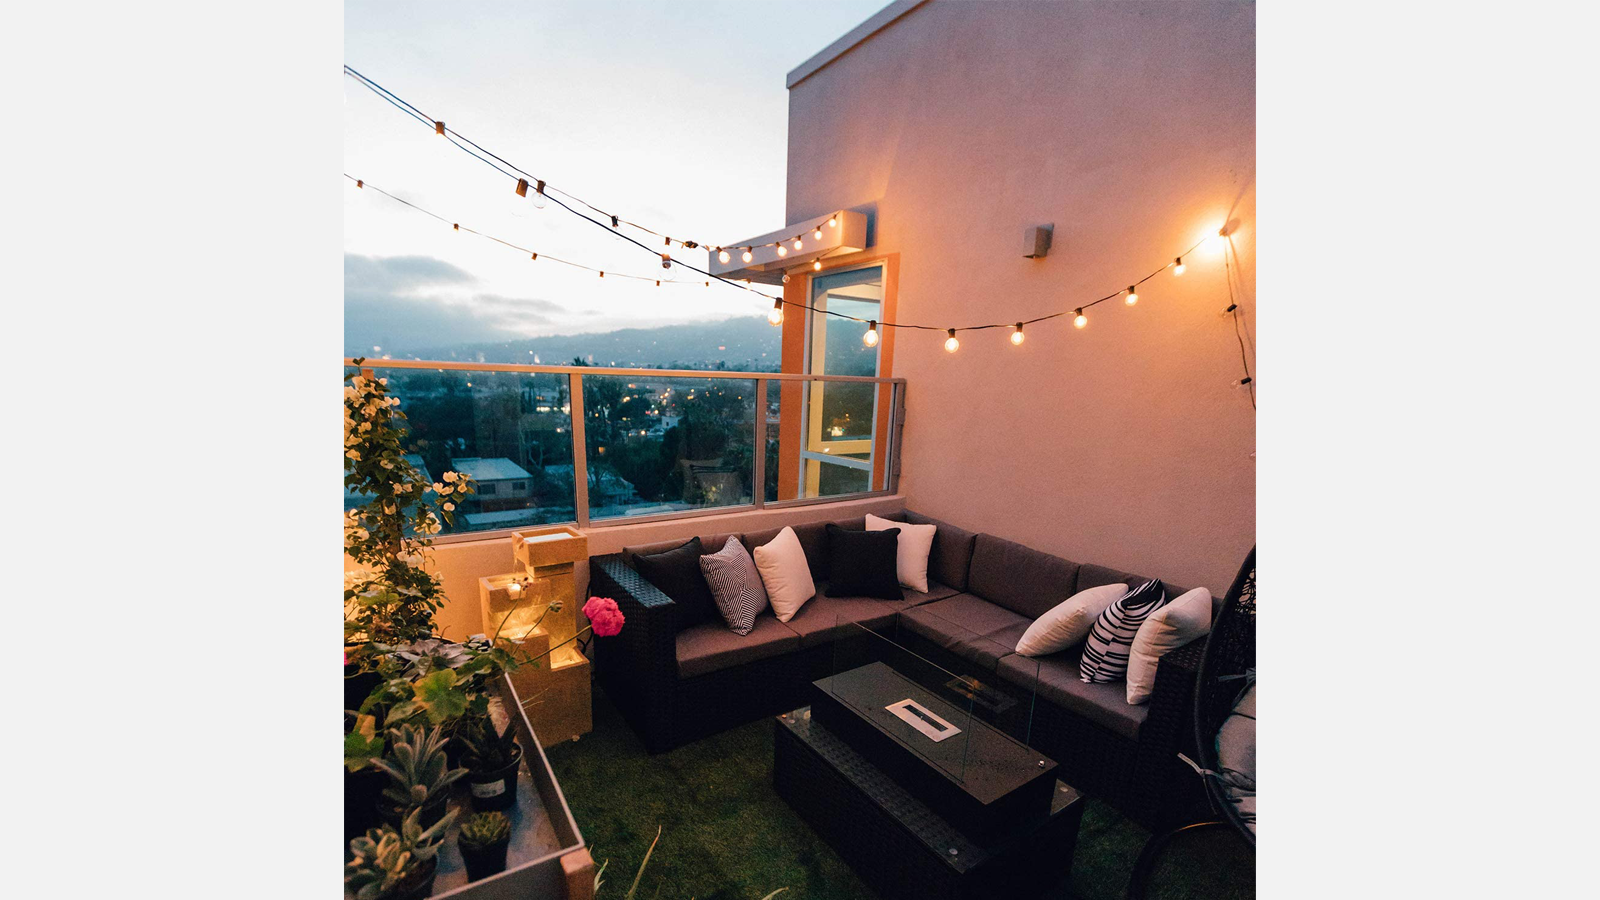 Light Up Your Outdoor Space with Stylish Edison Bulb String Lights